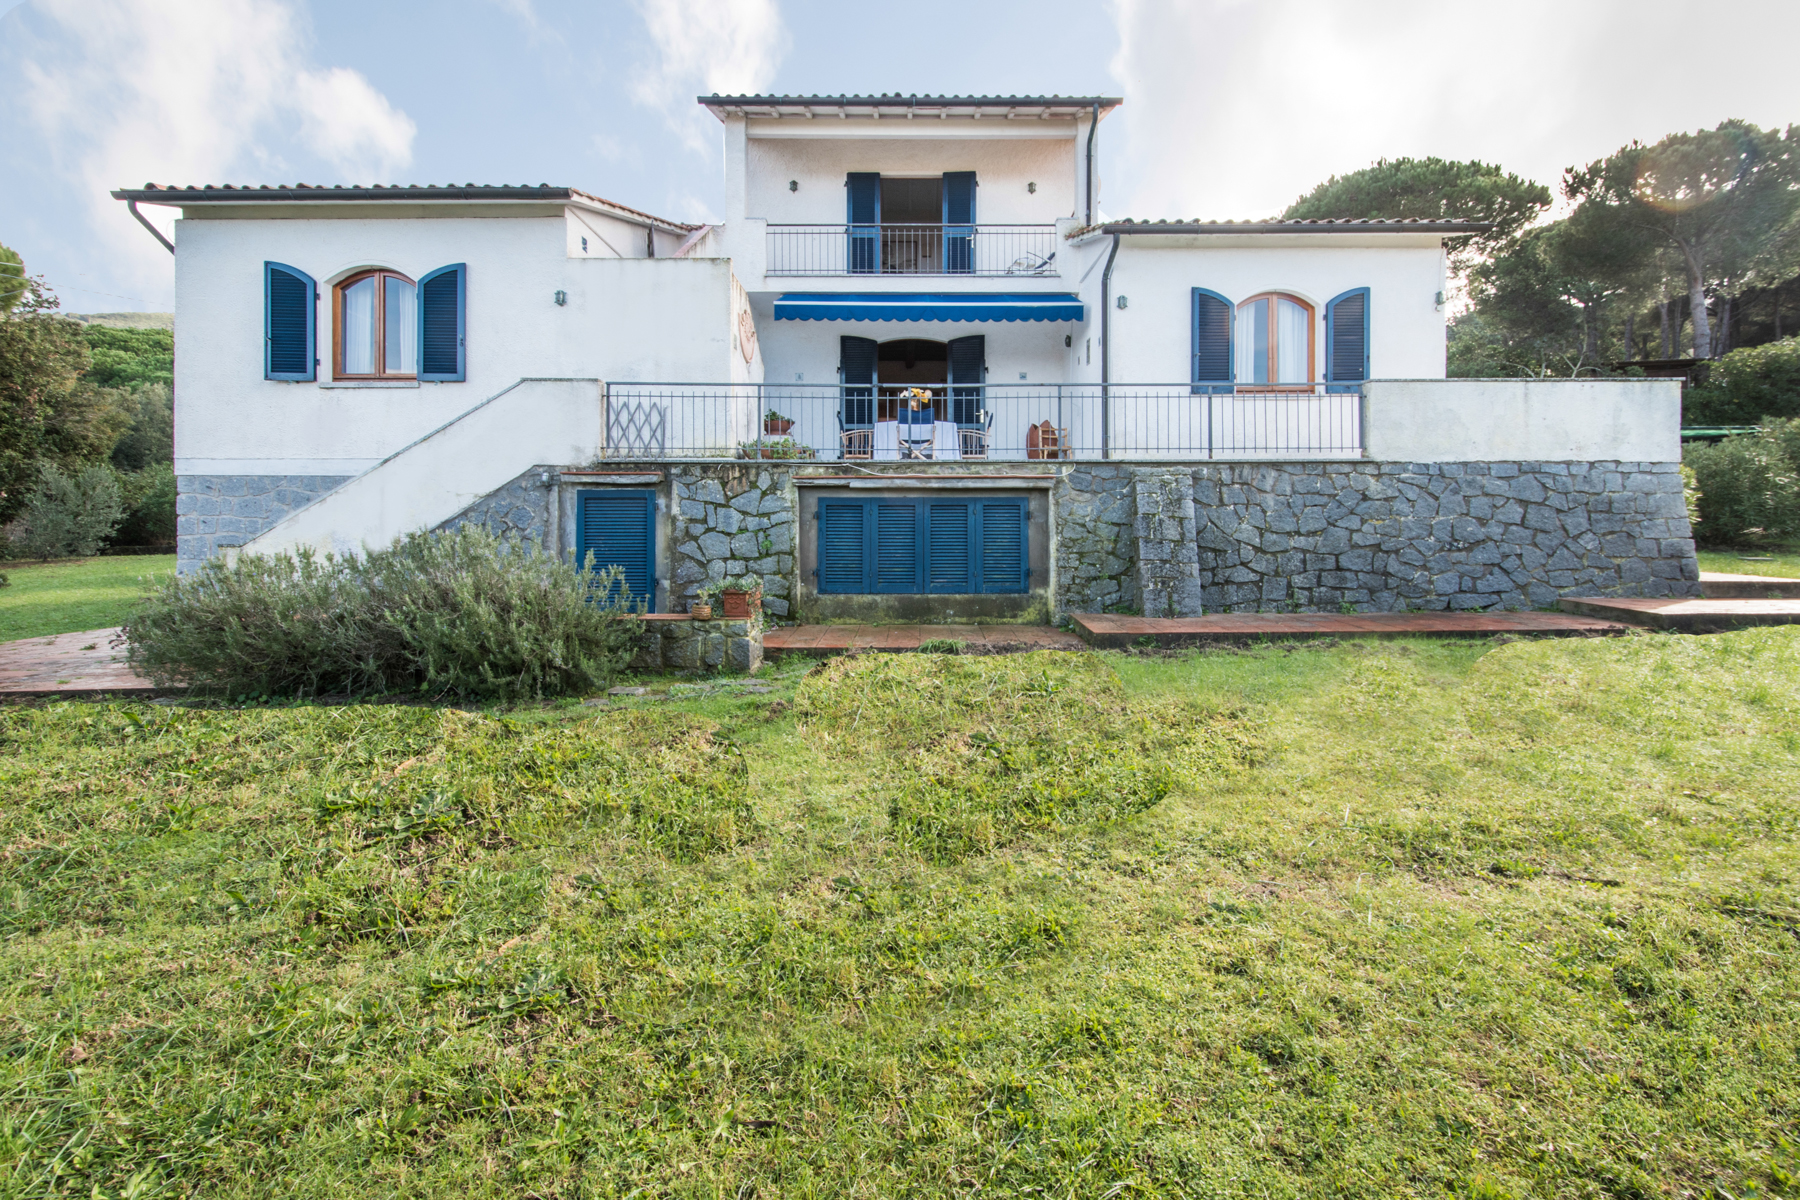 Single Family Home for Sale at Detached villa nestled within fenced garden Via di Campo all'Aia Marciana, 57033 Italy